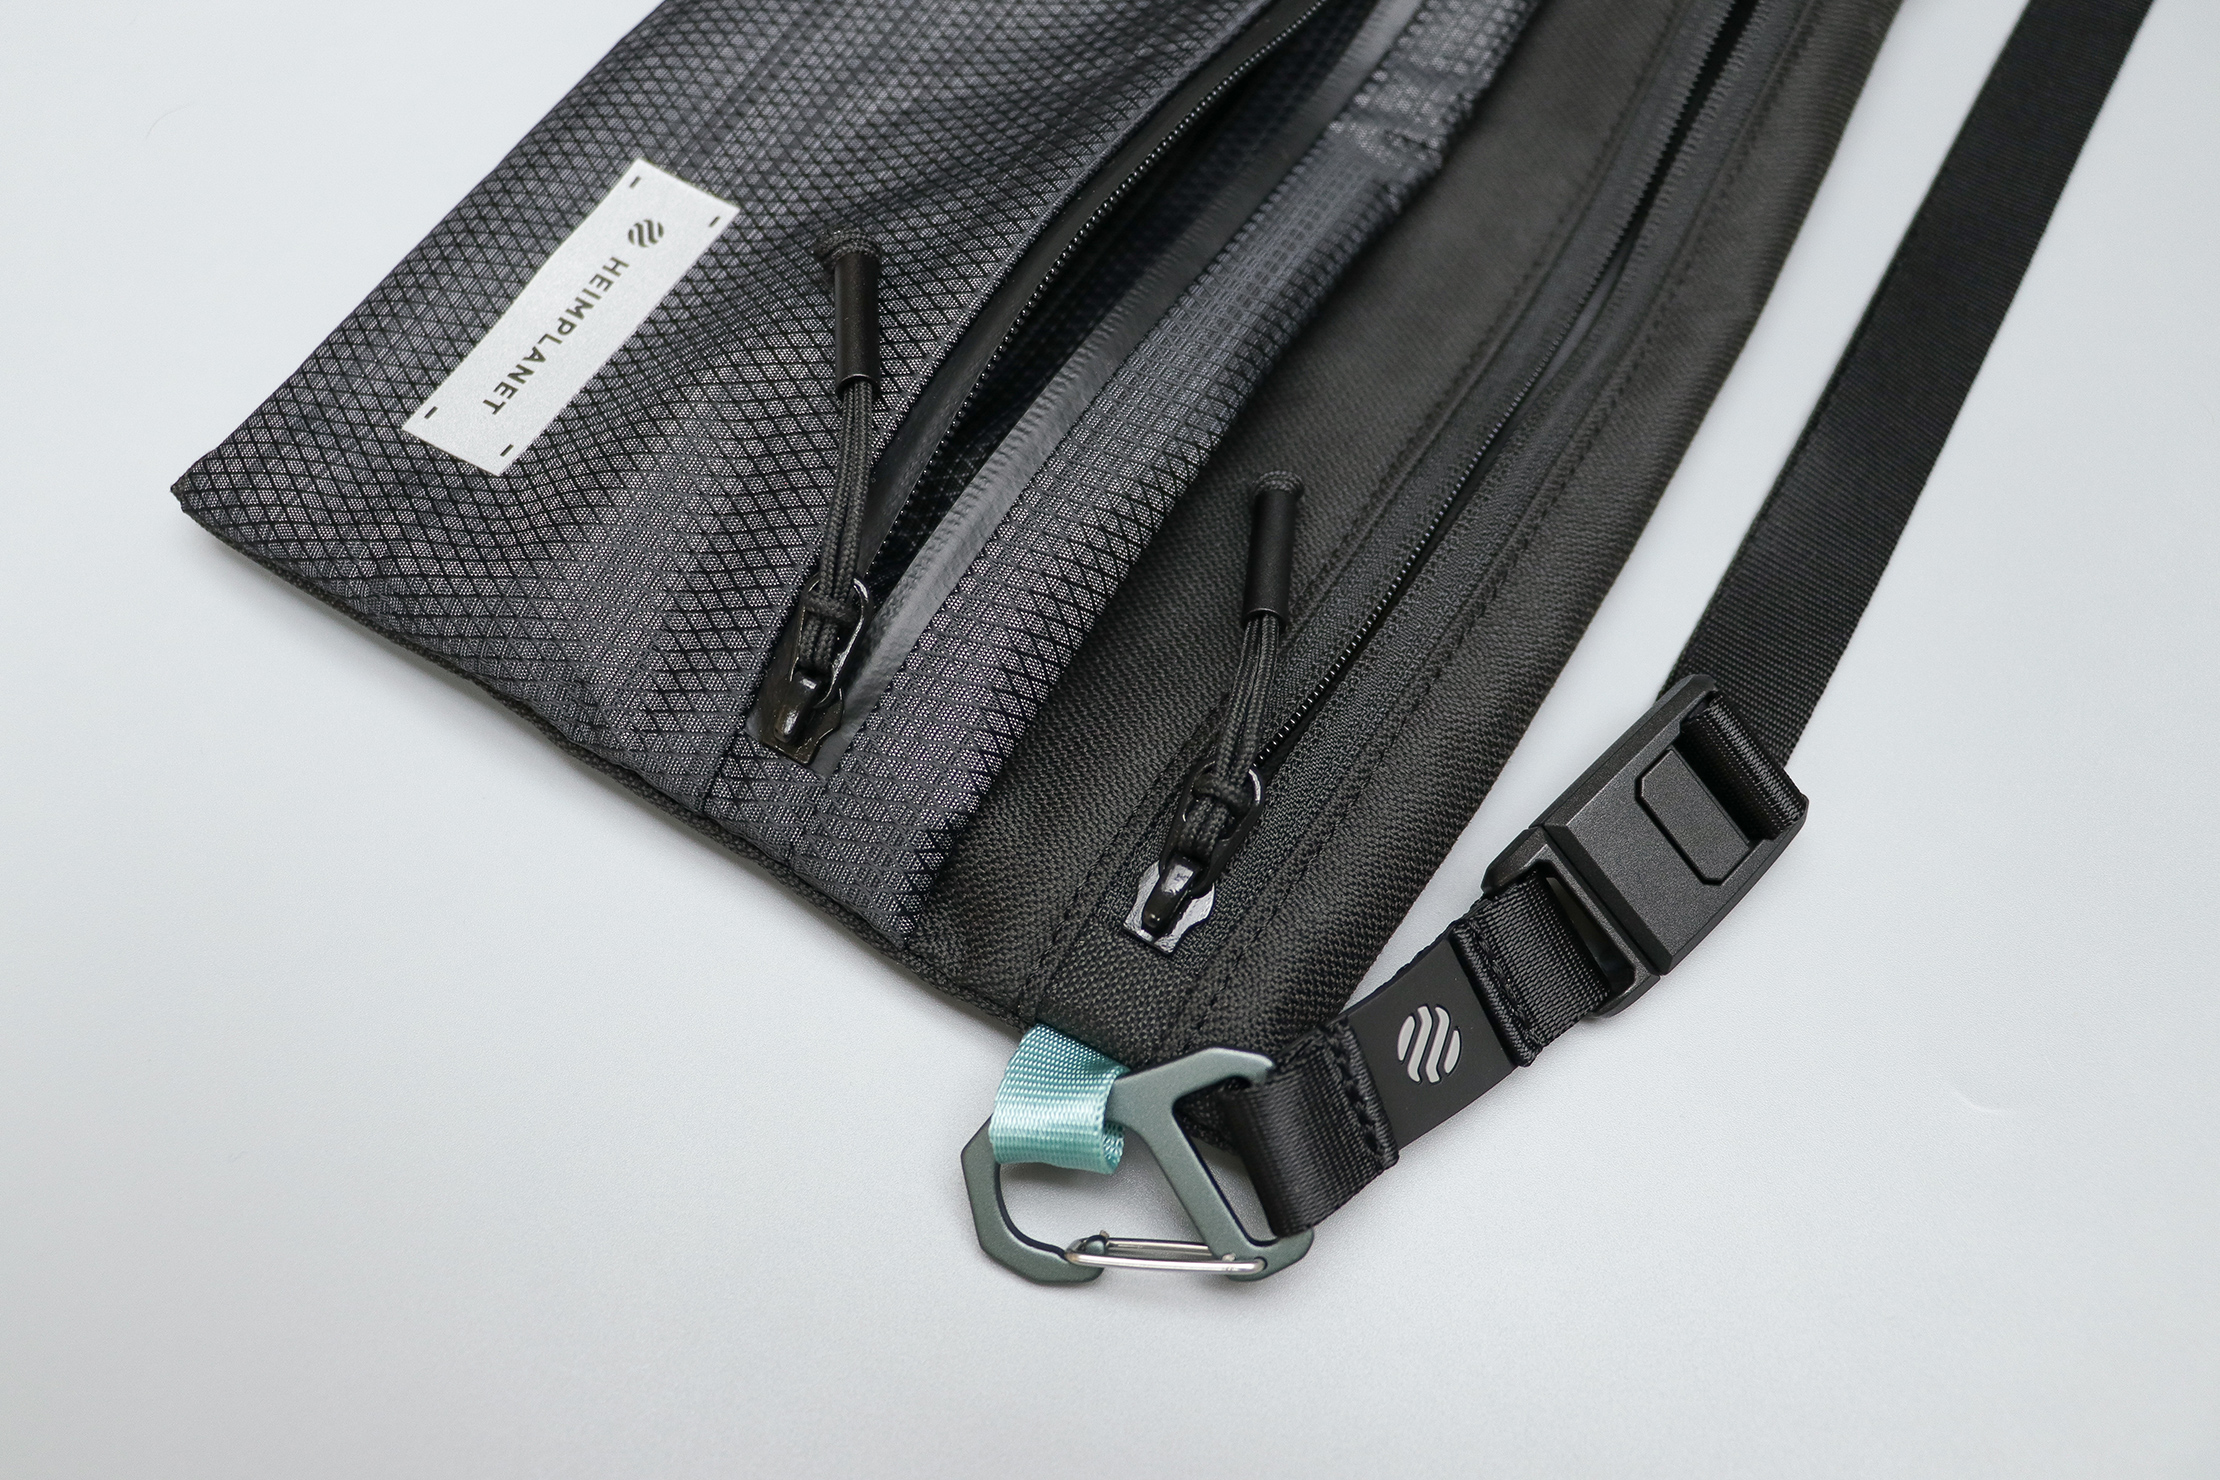 Heimplanet Neck Pouch A5 Zippers and Hardware